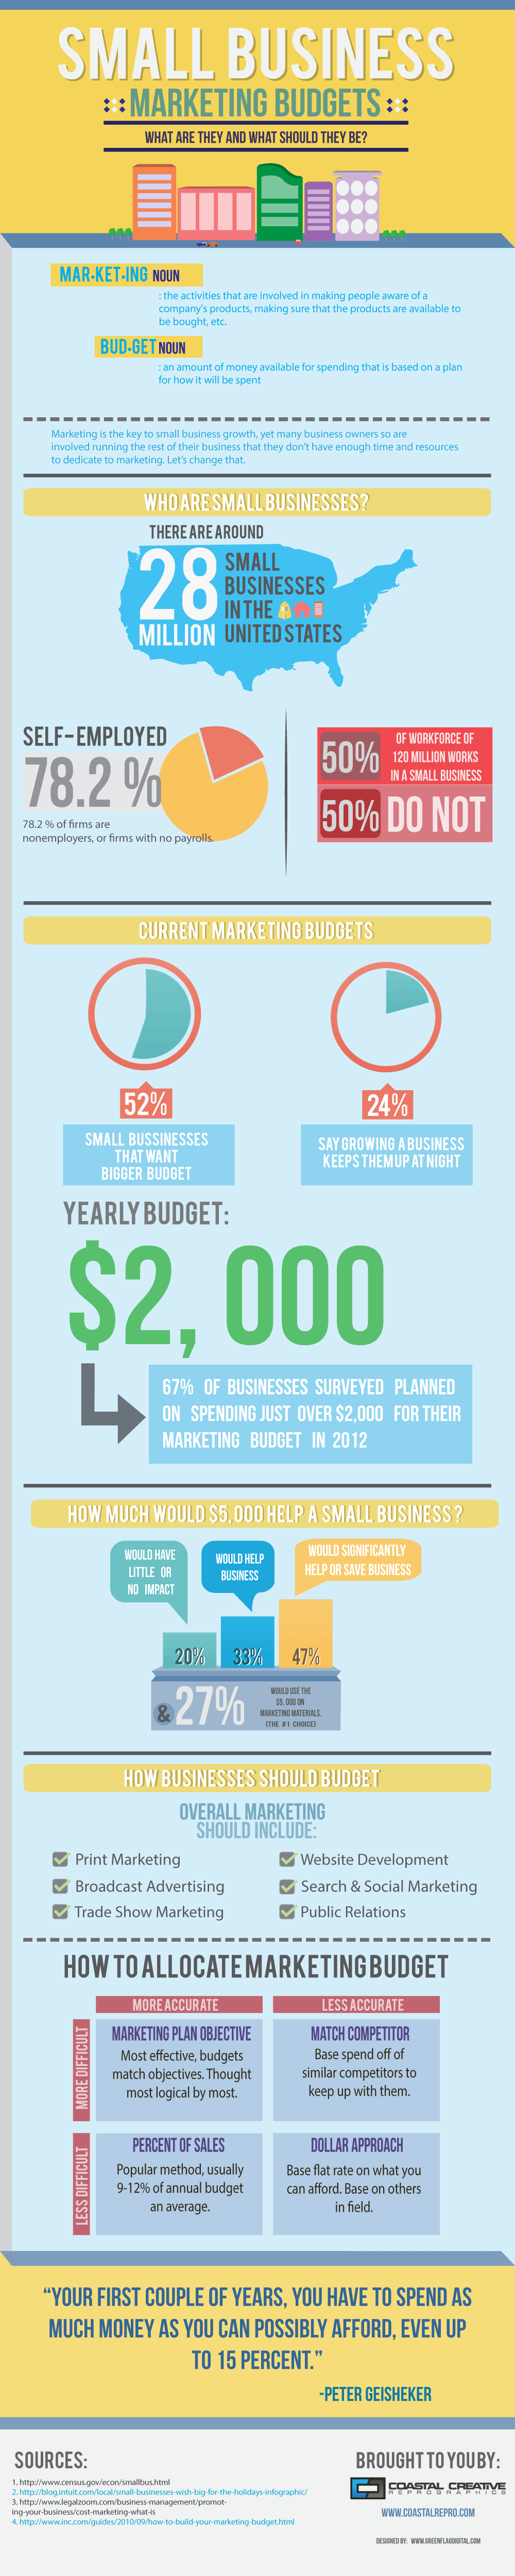 small business marketing budgets infographic coastal creative